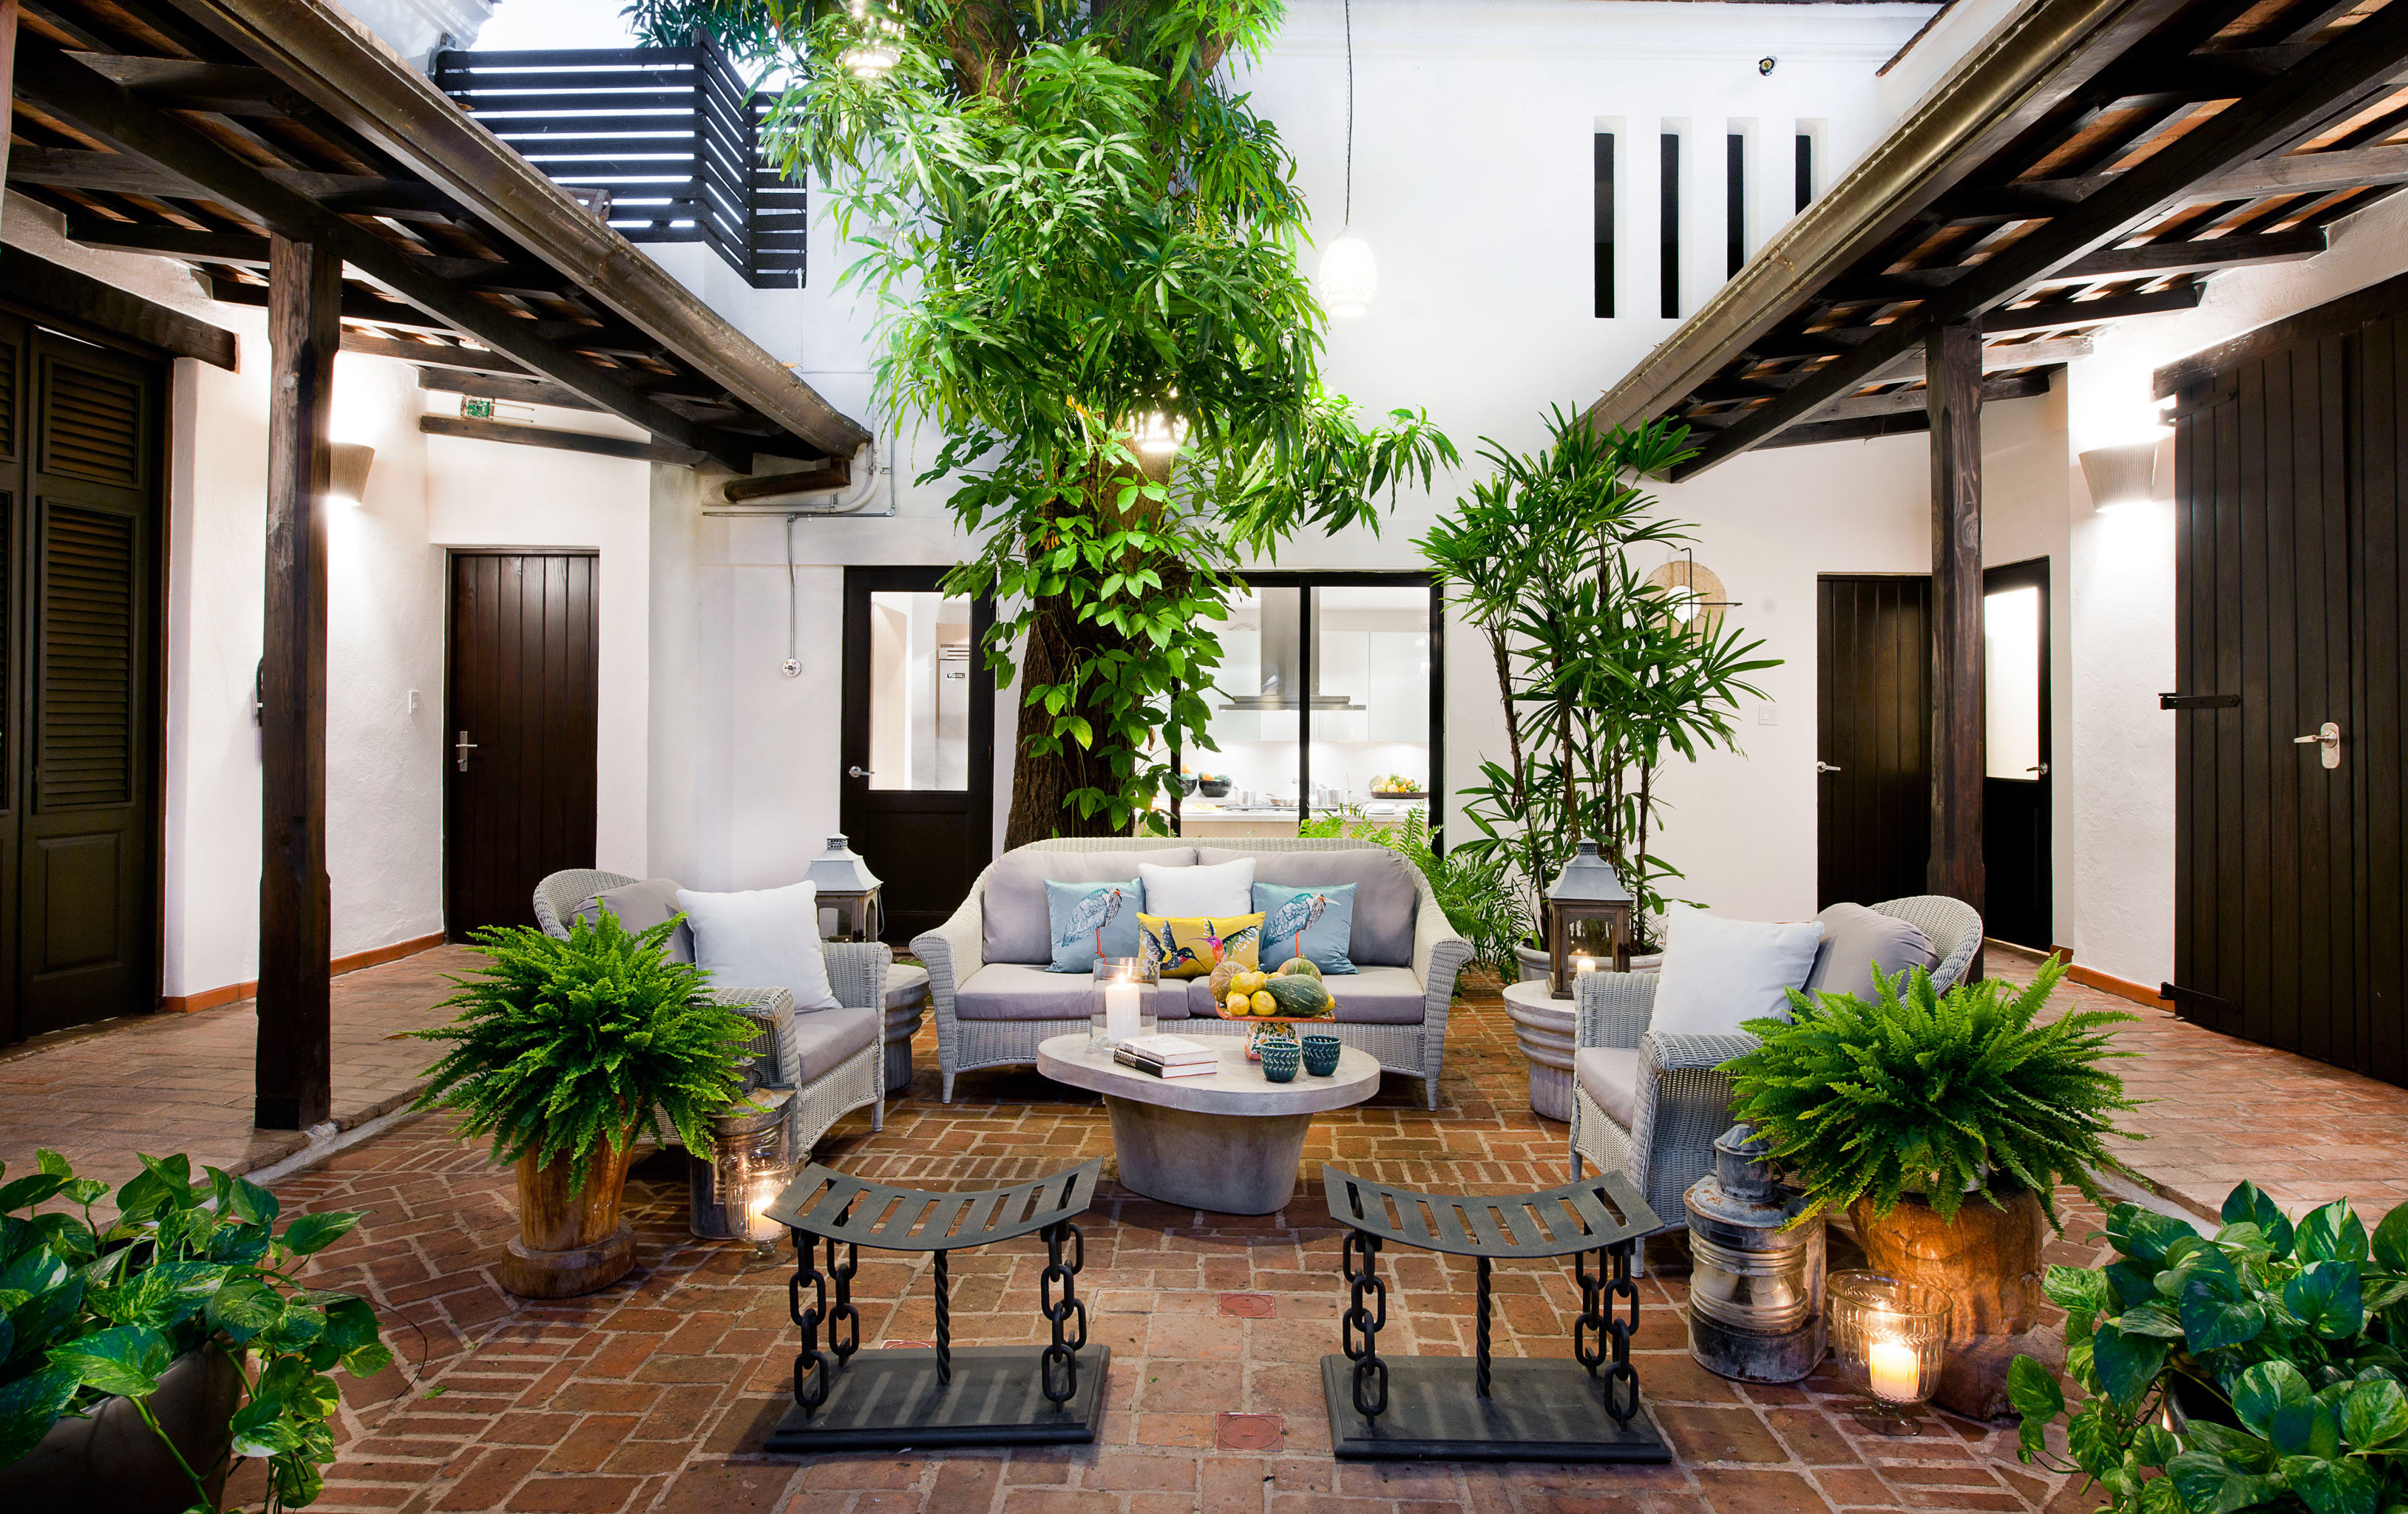 Boutique Courtyard Historic Hotels Lounge Outdoors Patio property room home building estate living room house porch plant backyard real estate outdoor structure condominium interior design cottage farmhouse Villa Design mansion furniture